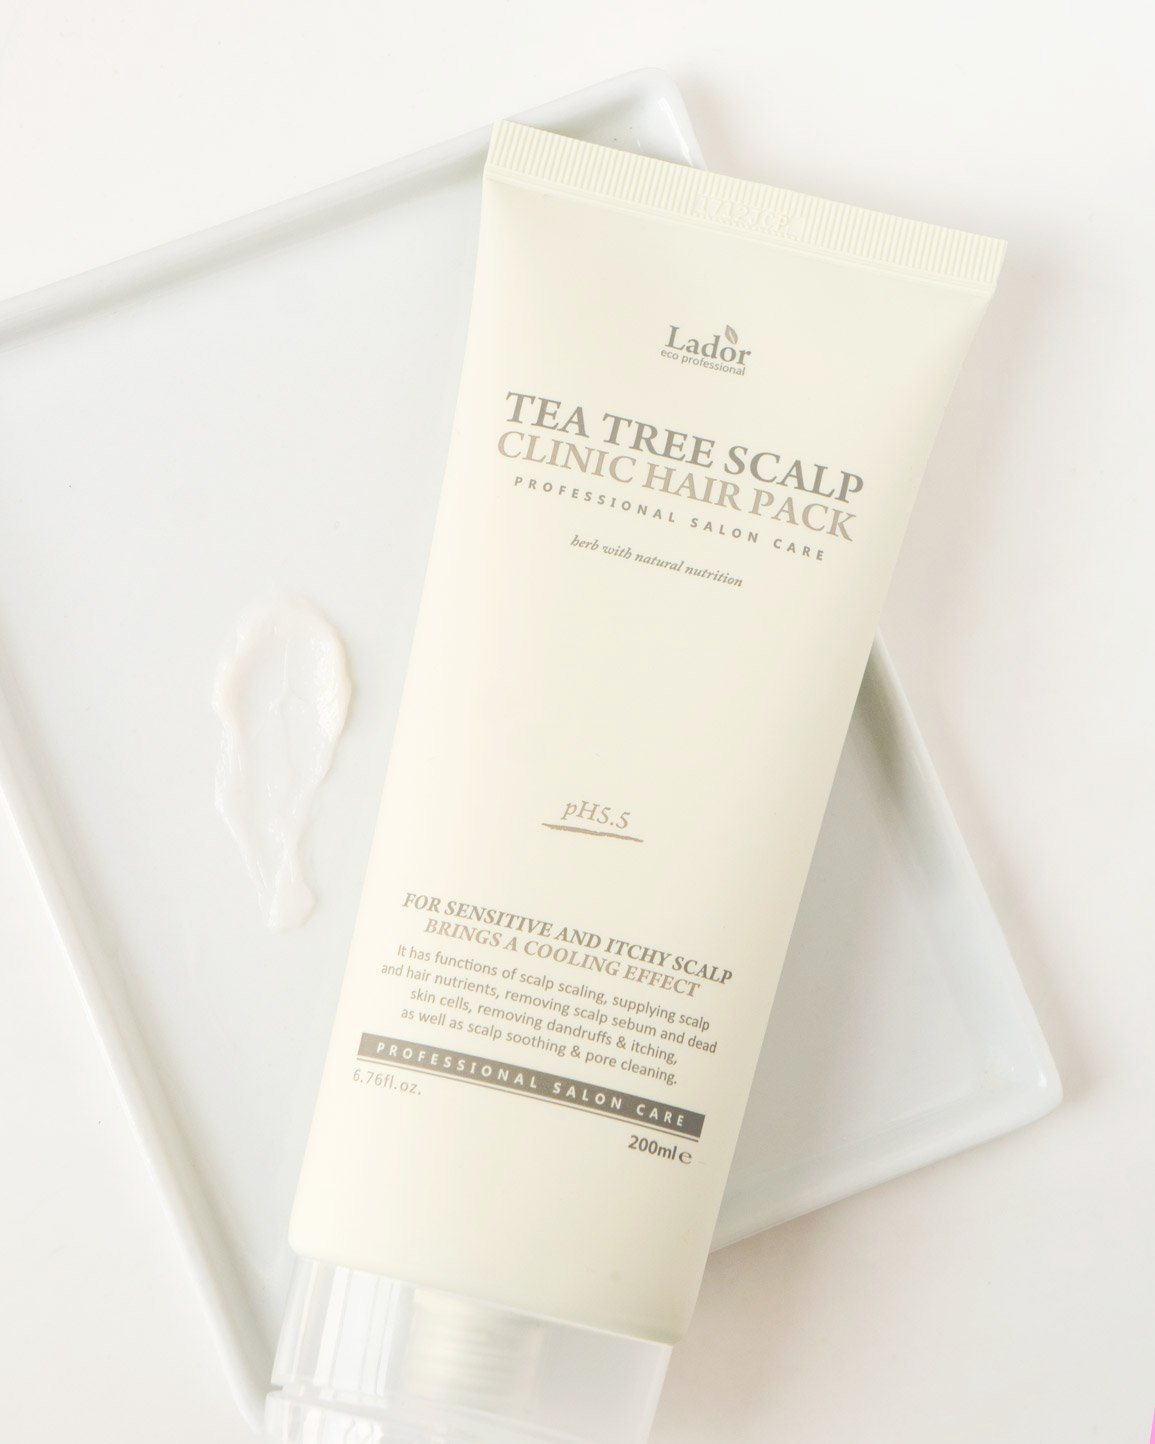 Tea Tree Scalp Clinic Hair Pack, clean beauty